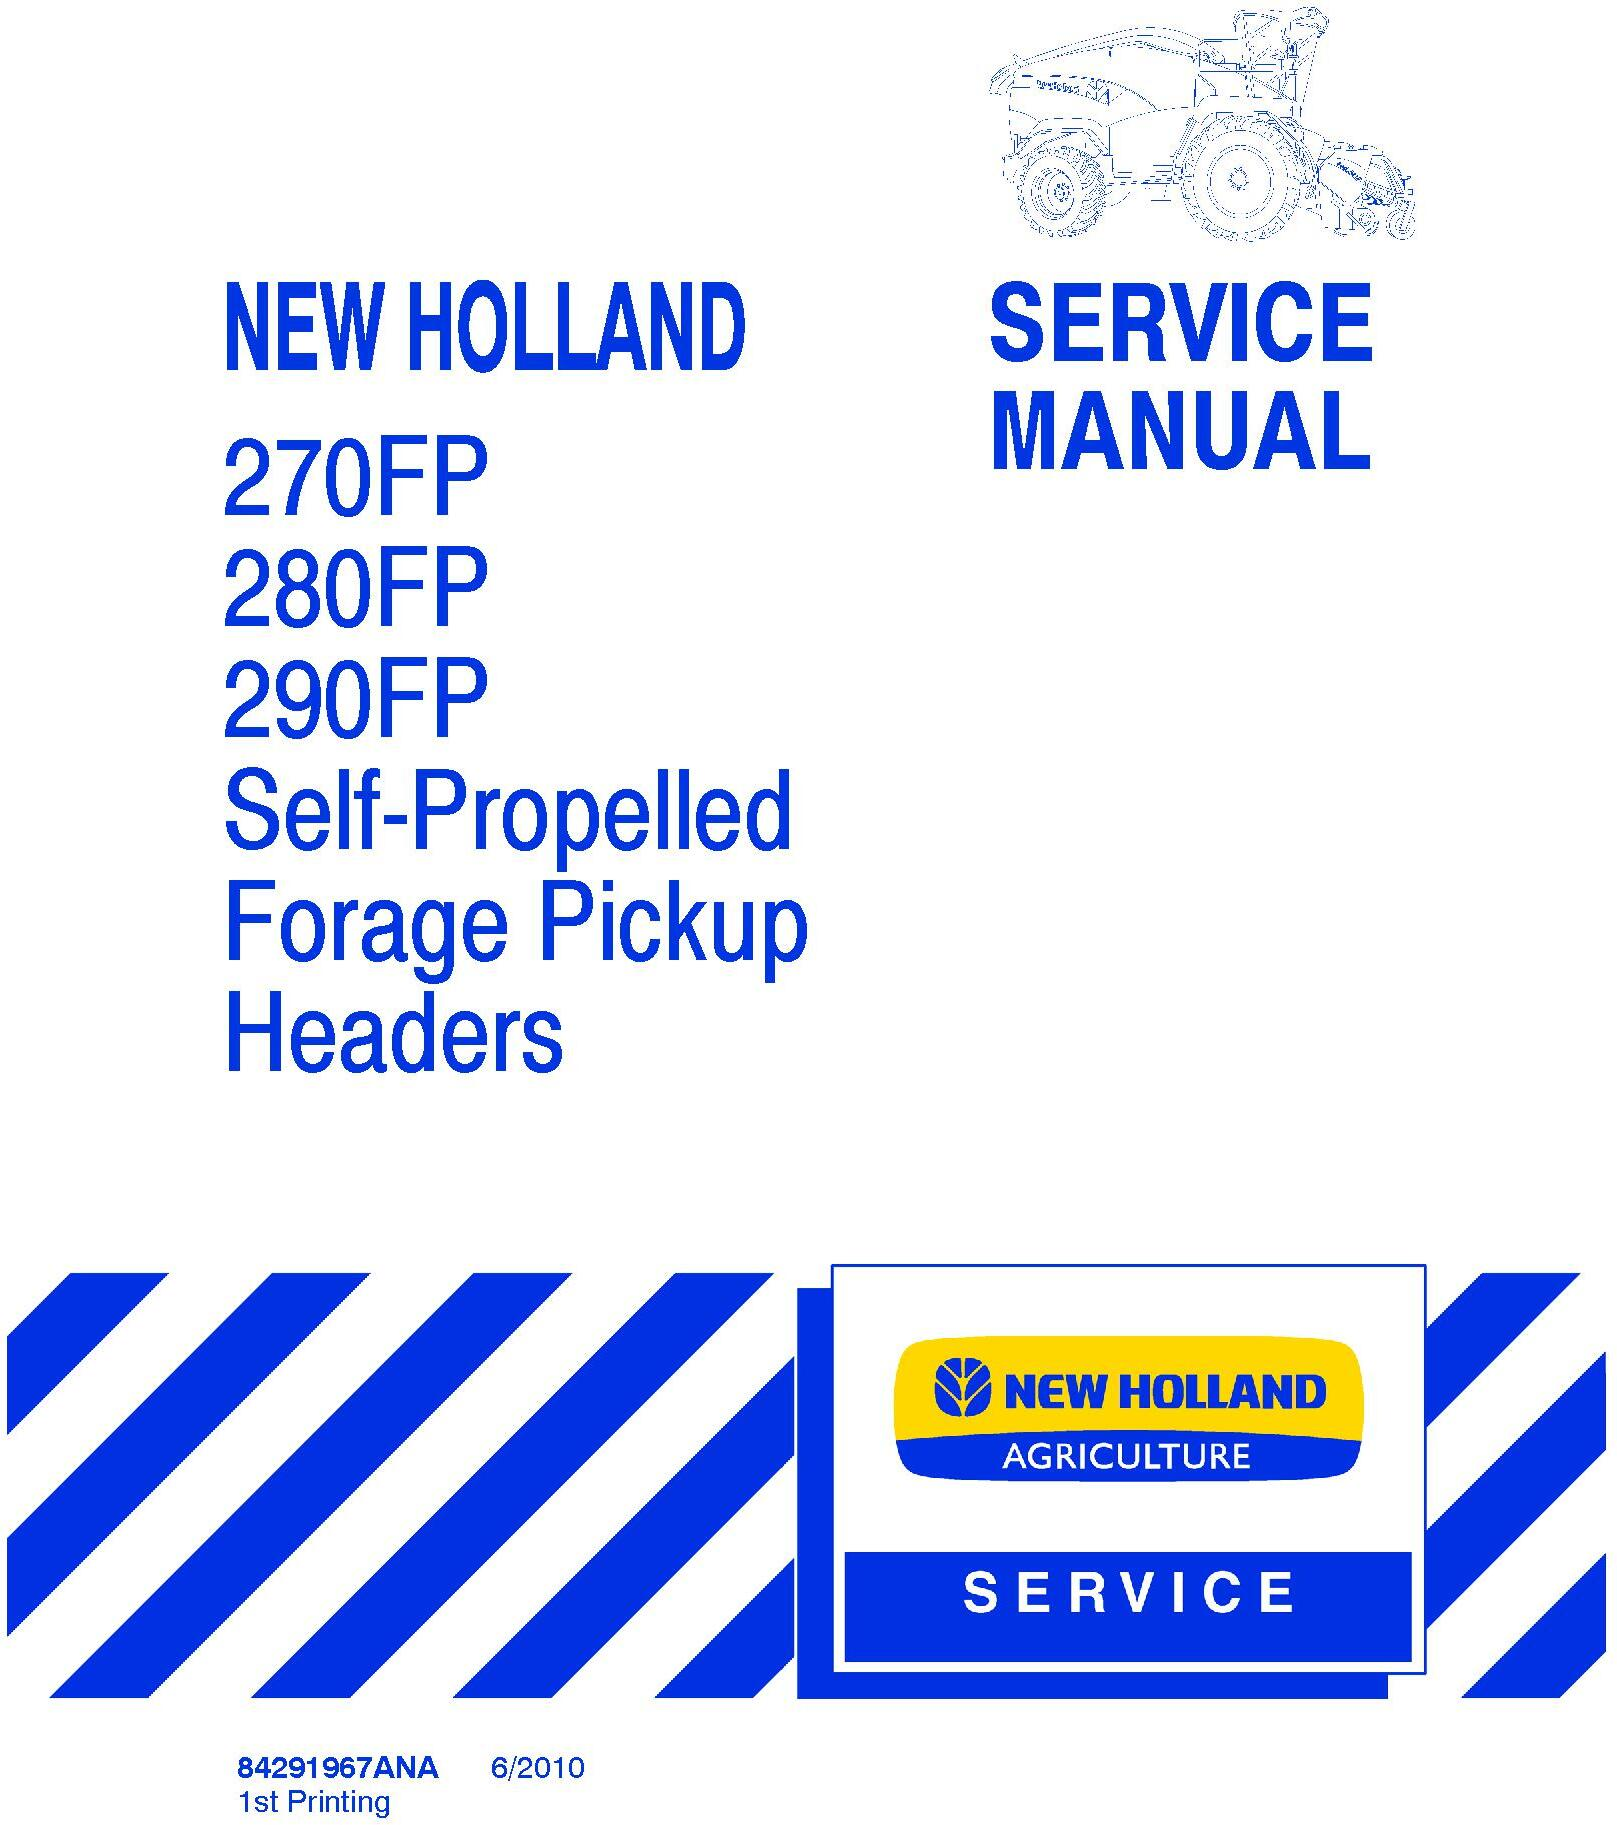 New Holland 270FP, 280FP, 290FP Self Propelled Forage Pickup Headers Service Manual - 20055